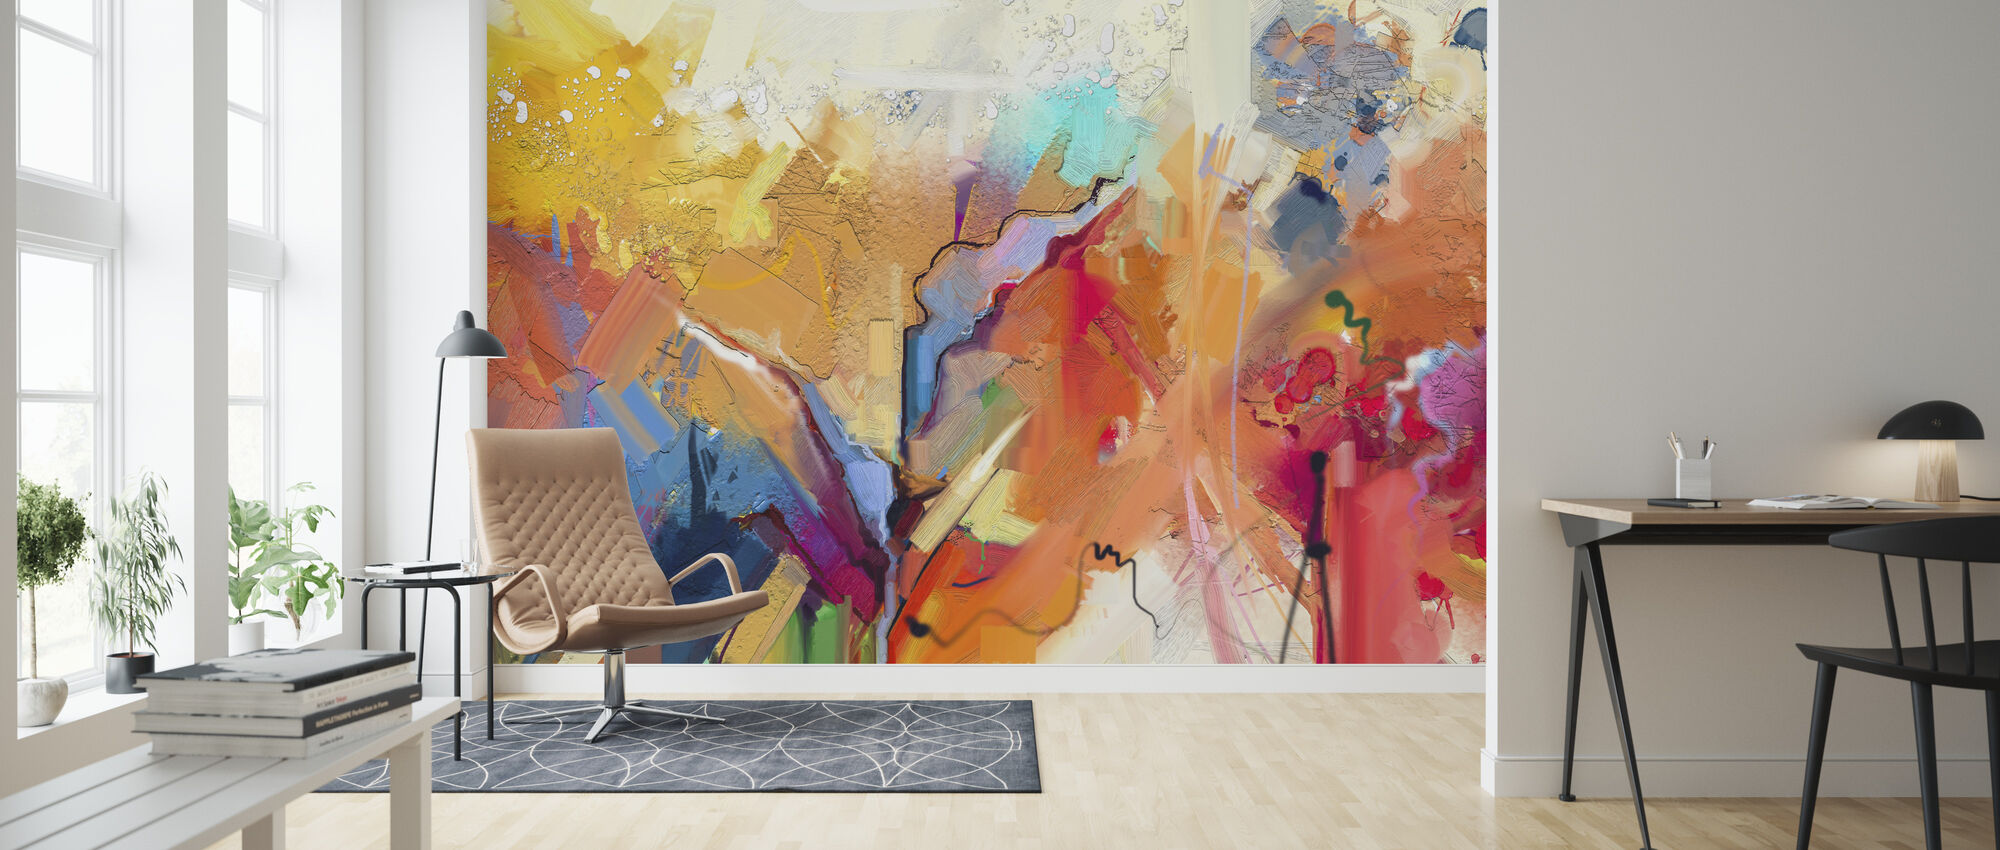 Colorful Abstract Painting - Wallpaper - Living Room